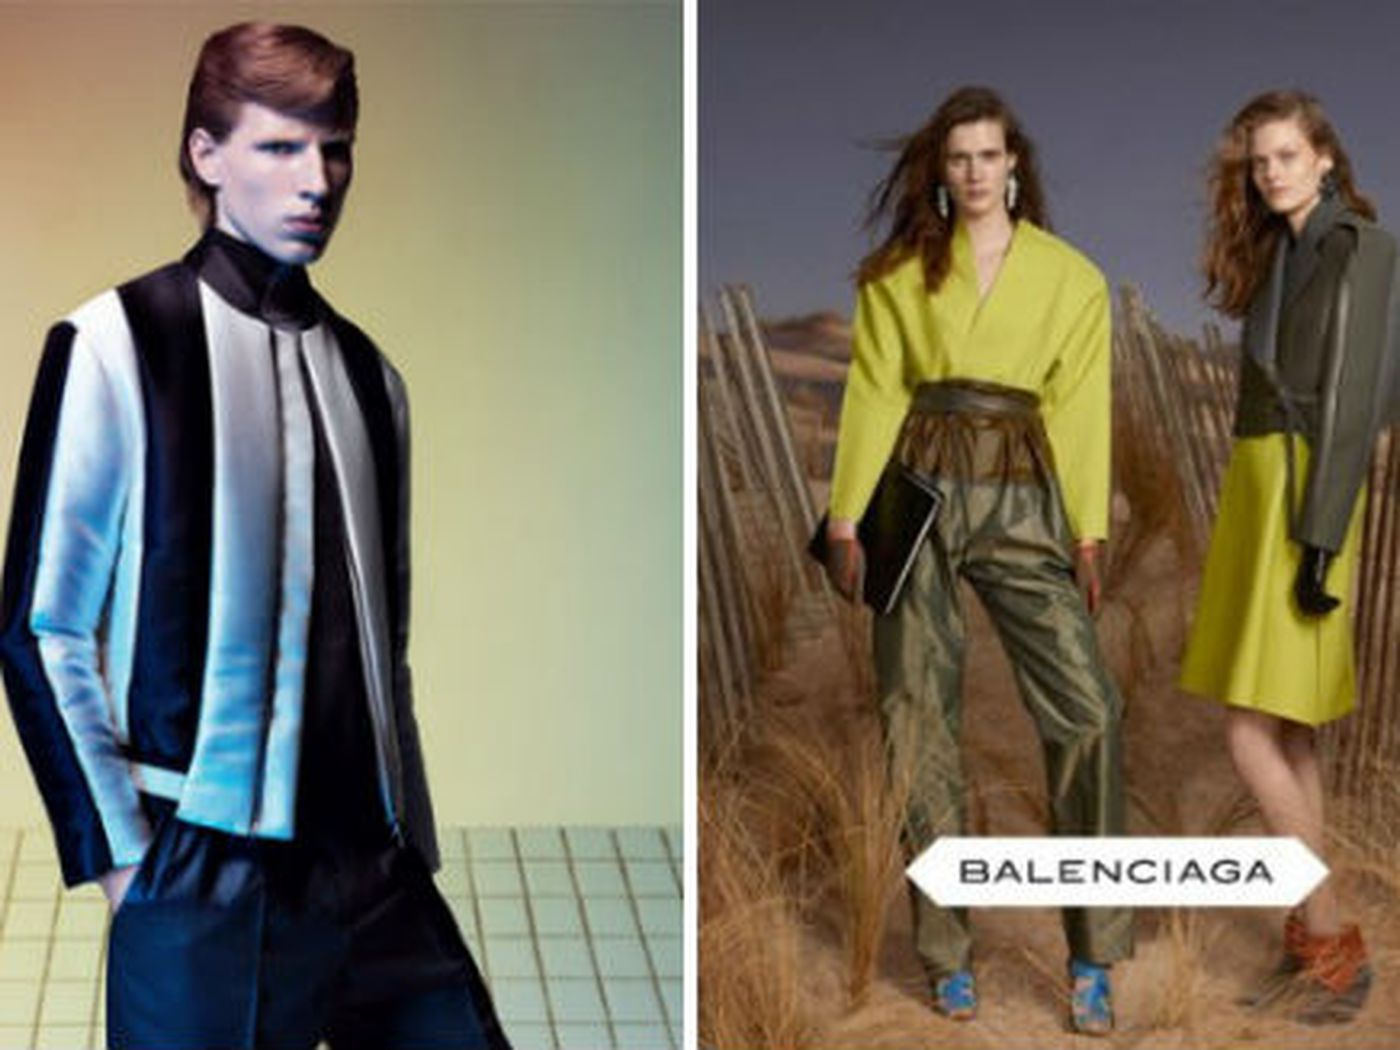 954630f307d99 Balenciaga Is Now Opening Two Stores on Mercer Street - Racked NY